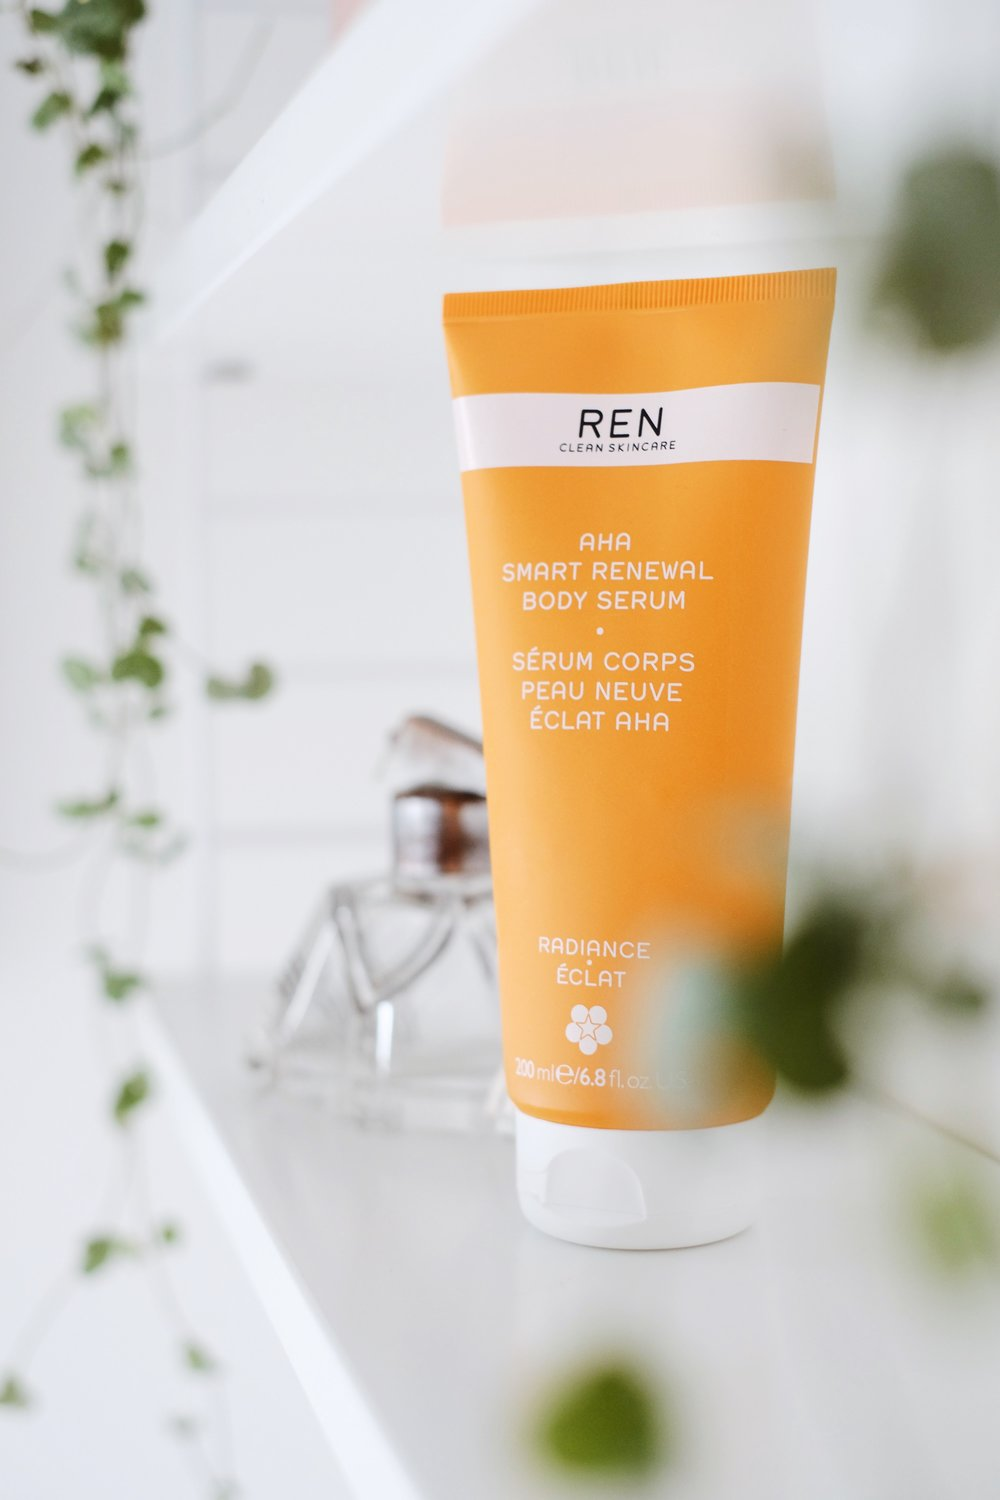 6. REN -AHA Smart Renewal Body Serum - We recently got introduced to this brand new product at a Press Event of REN's lovely PR Agency